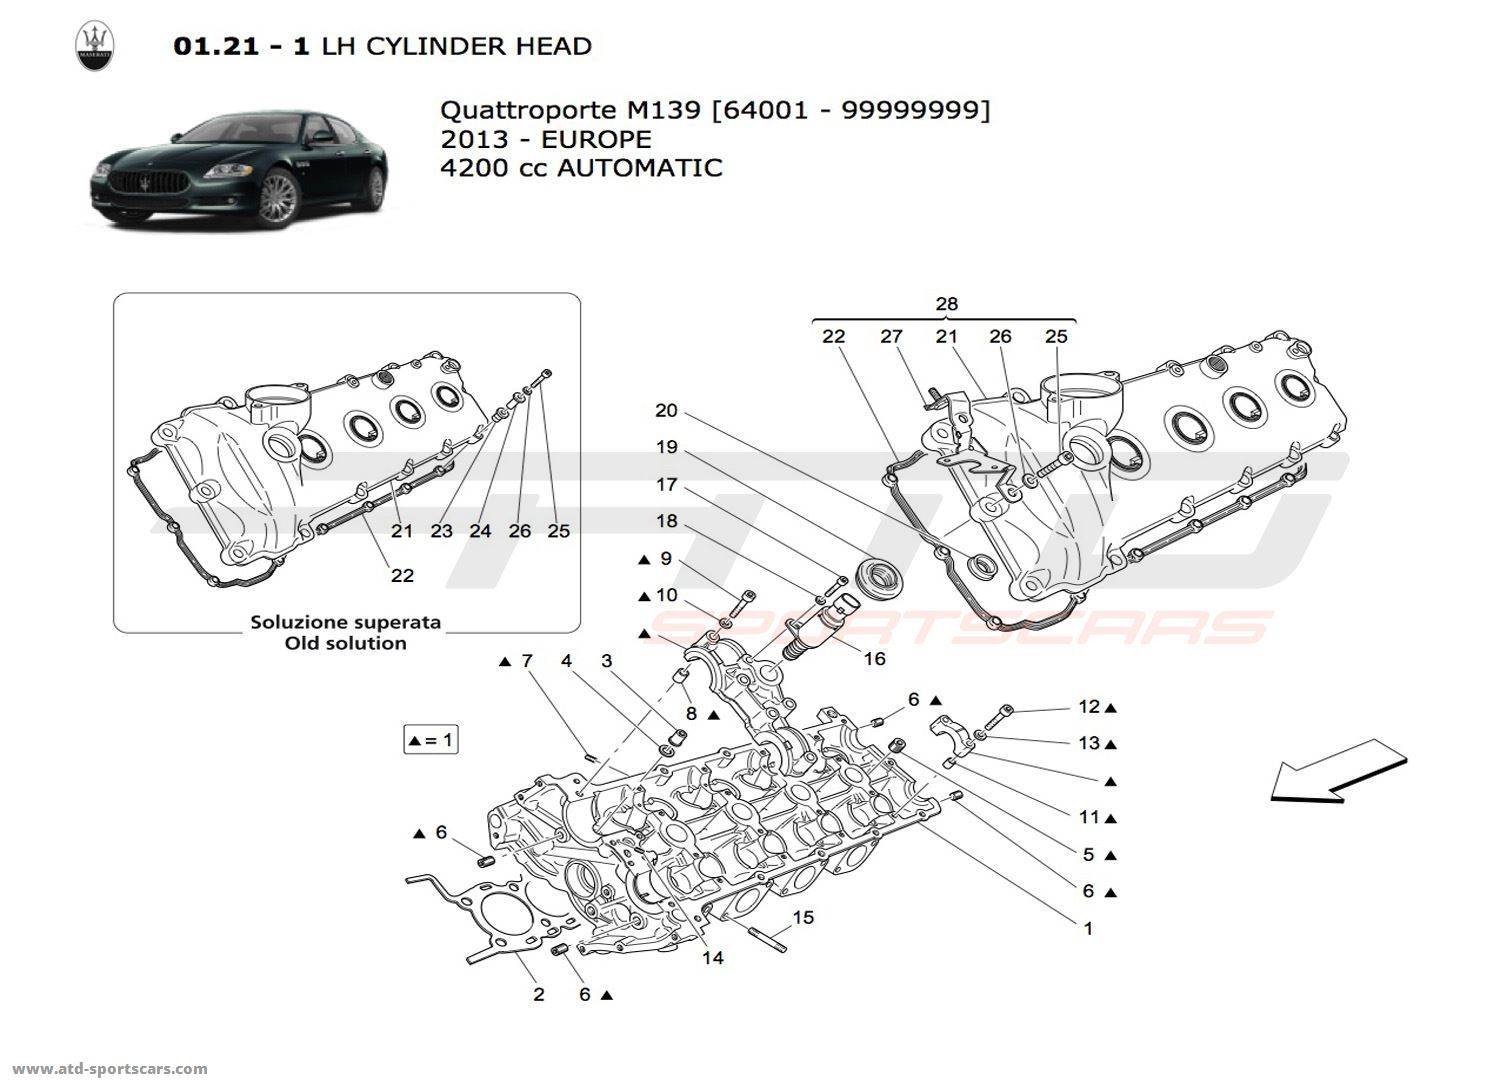 maserati quattroporte 4 2l boite auto engine parts at atd sportscars